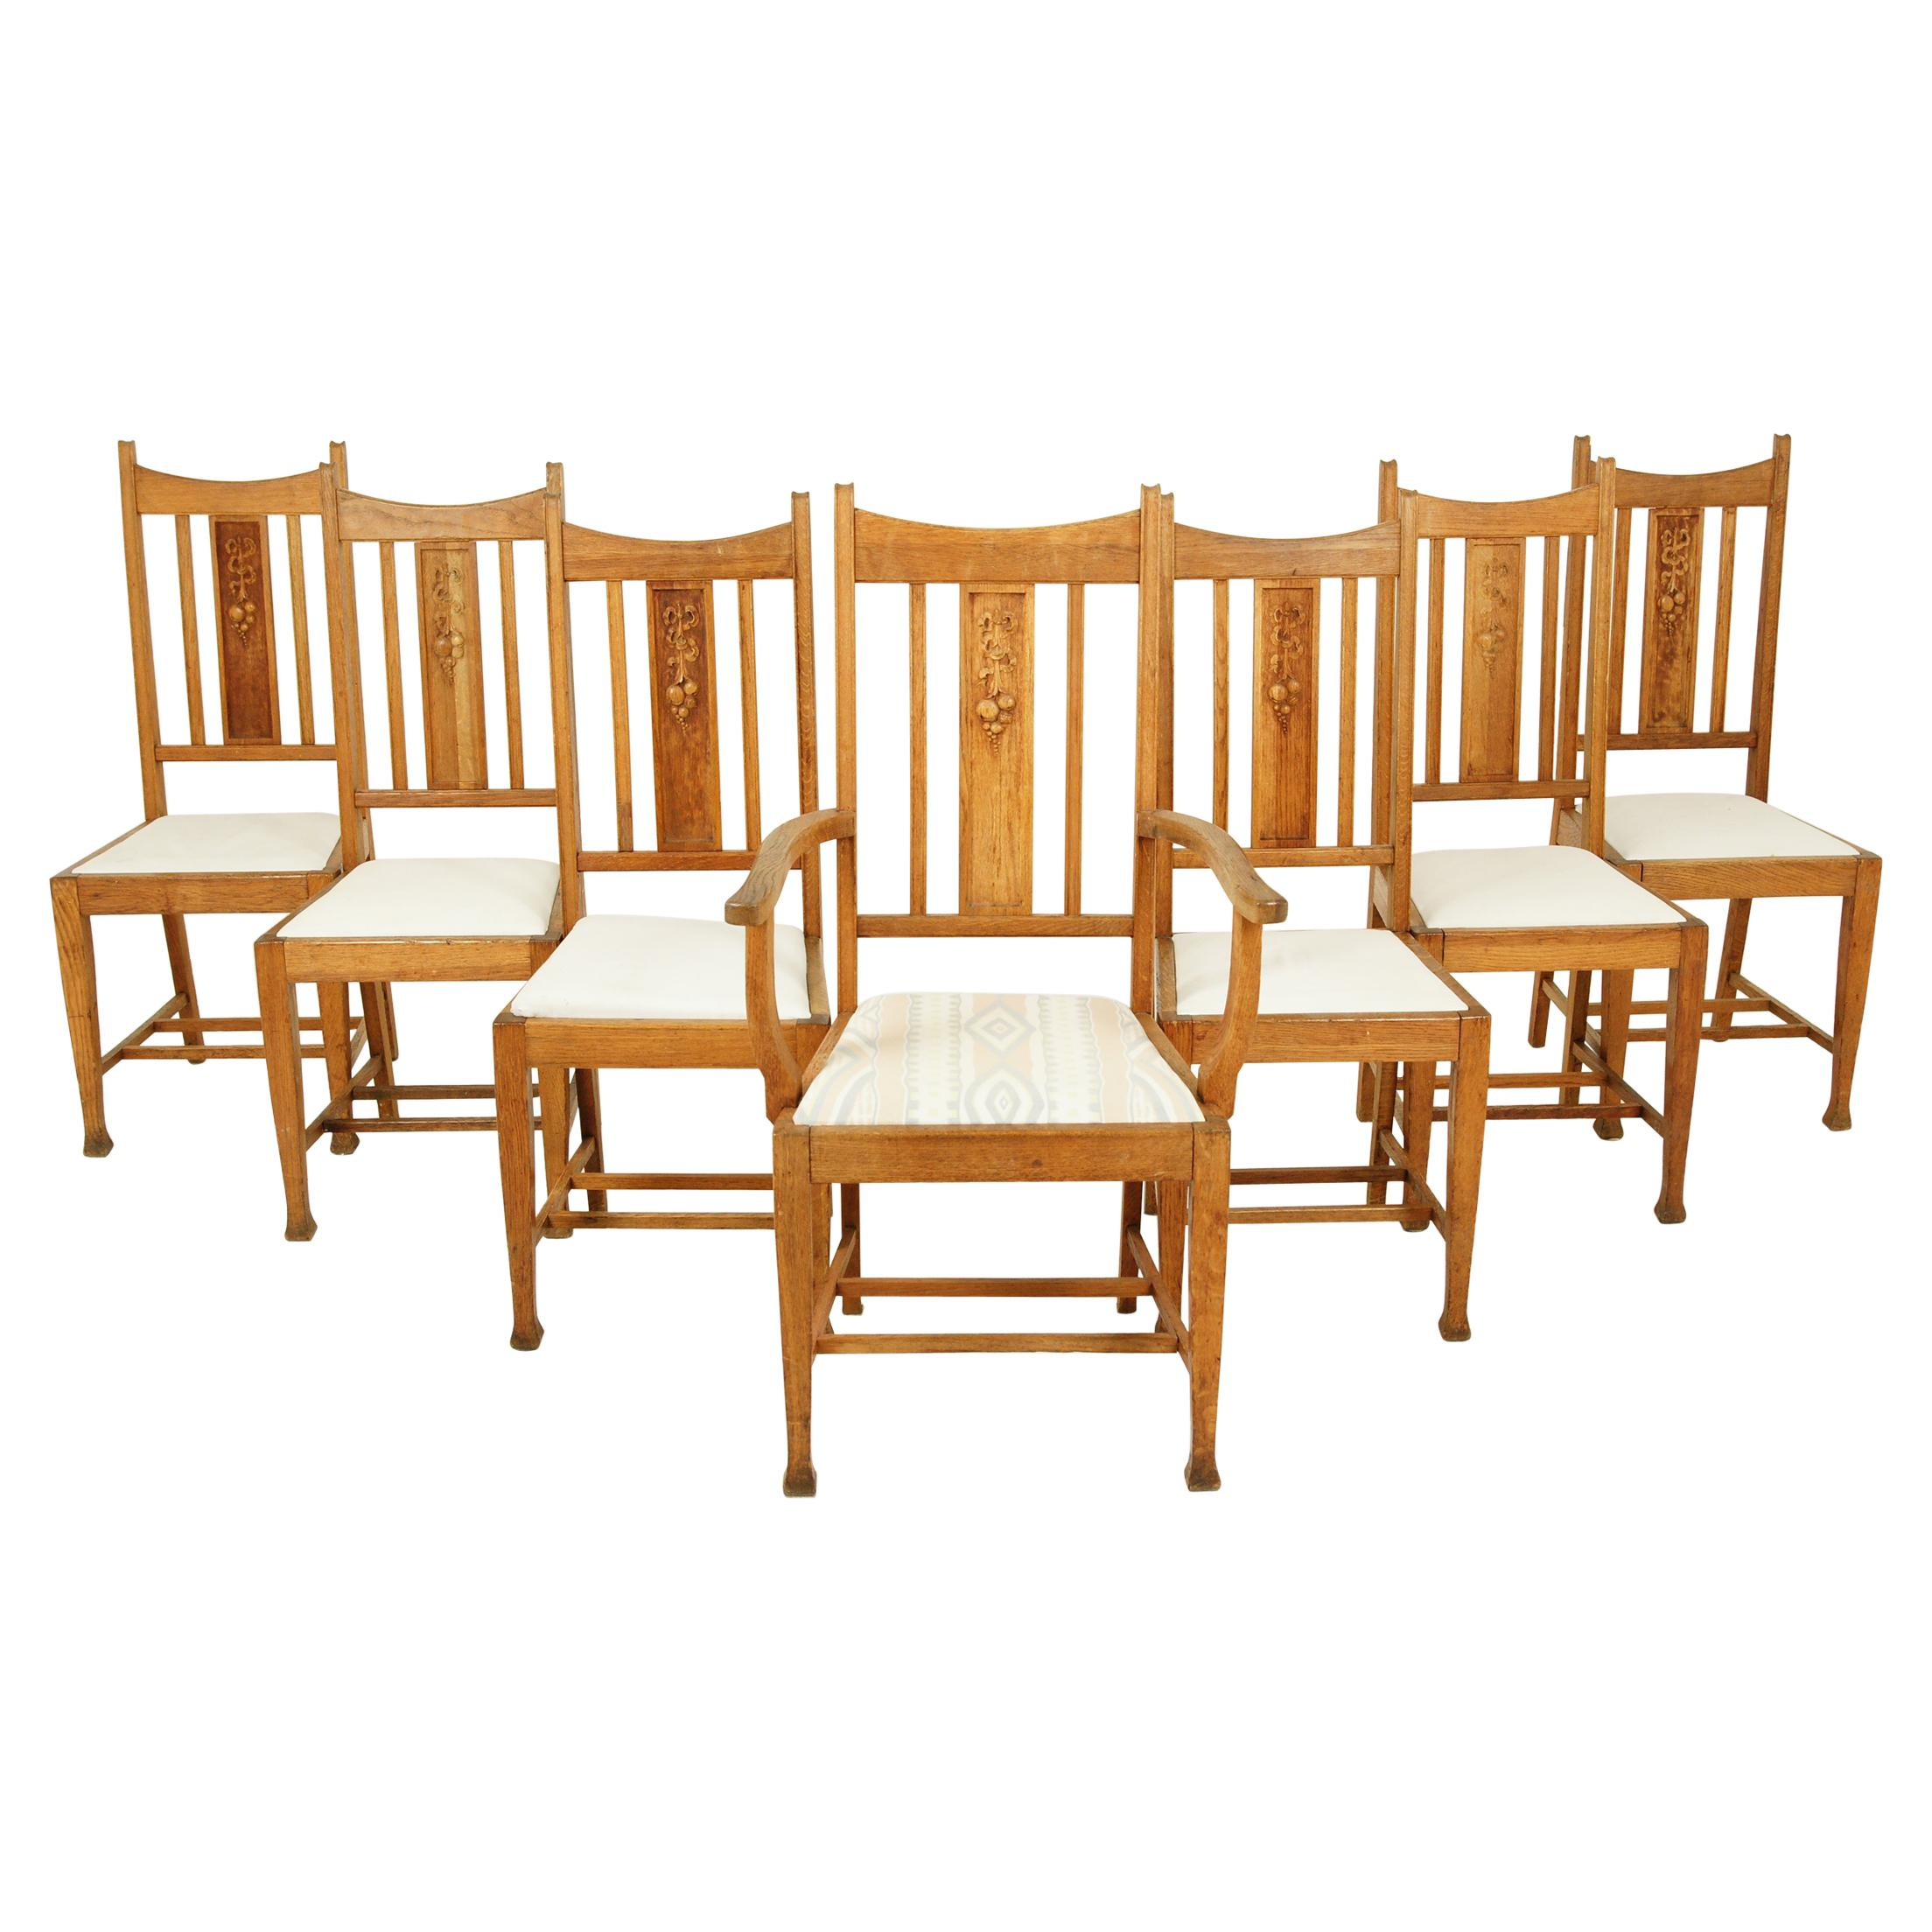 7 Antique Dining Chairs, Arts & Crafts, Mission Carved Oak, Scotland 1910, B2543